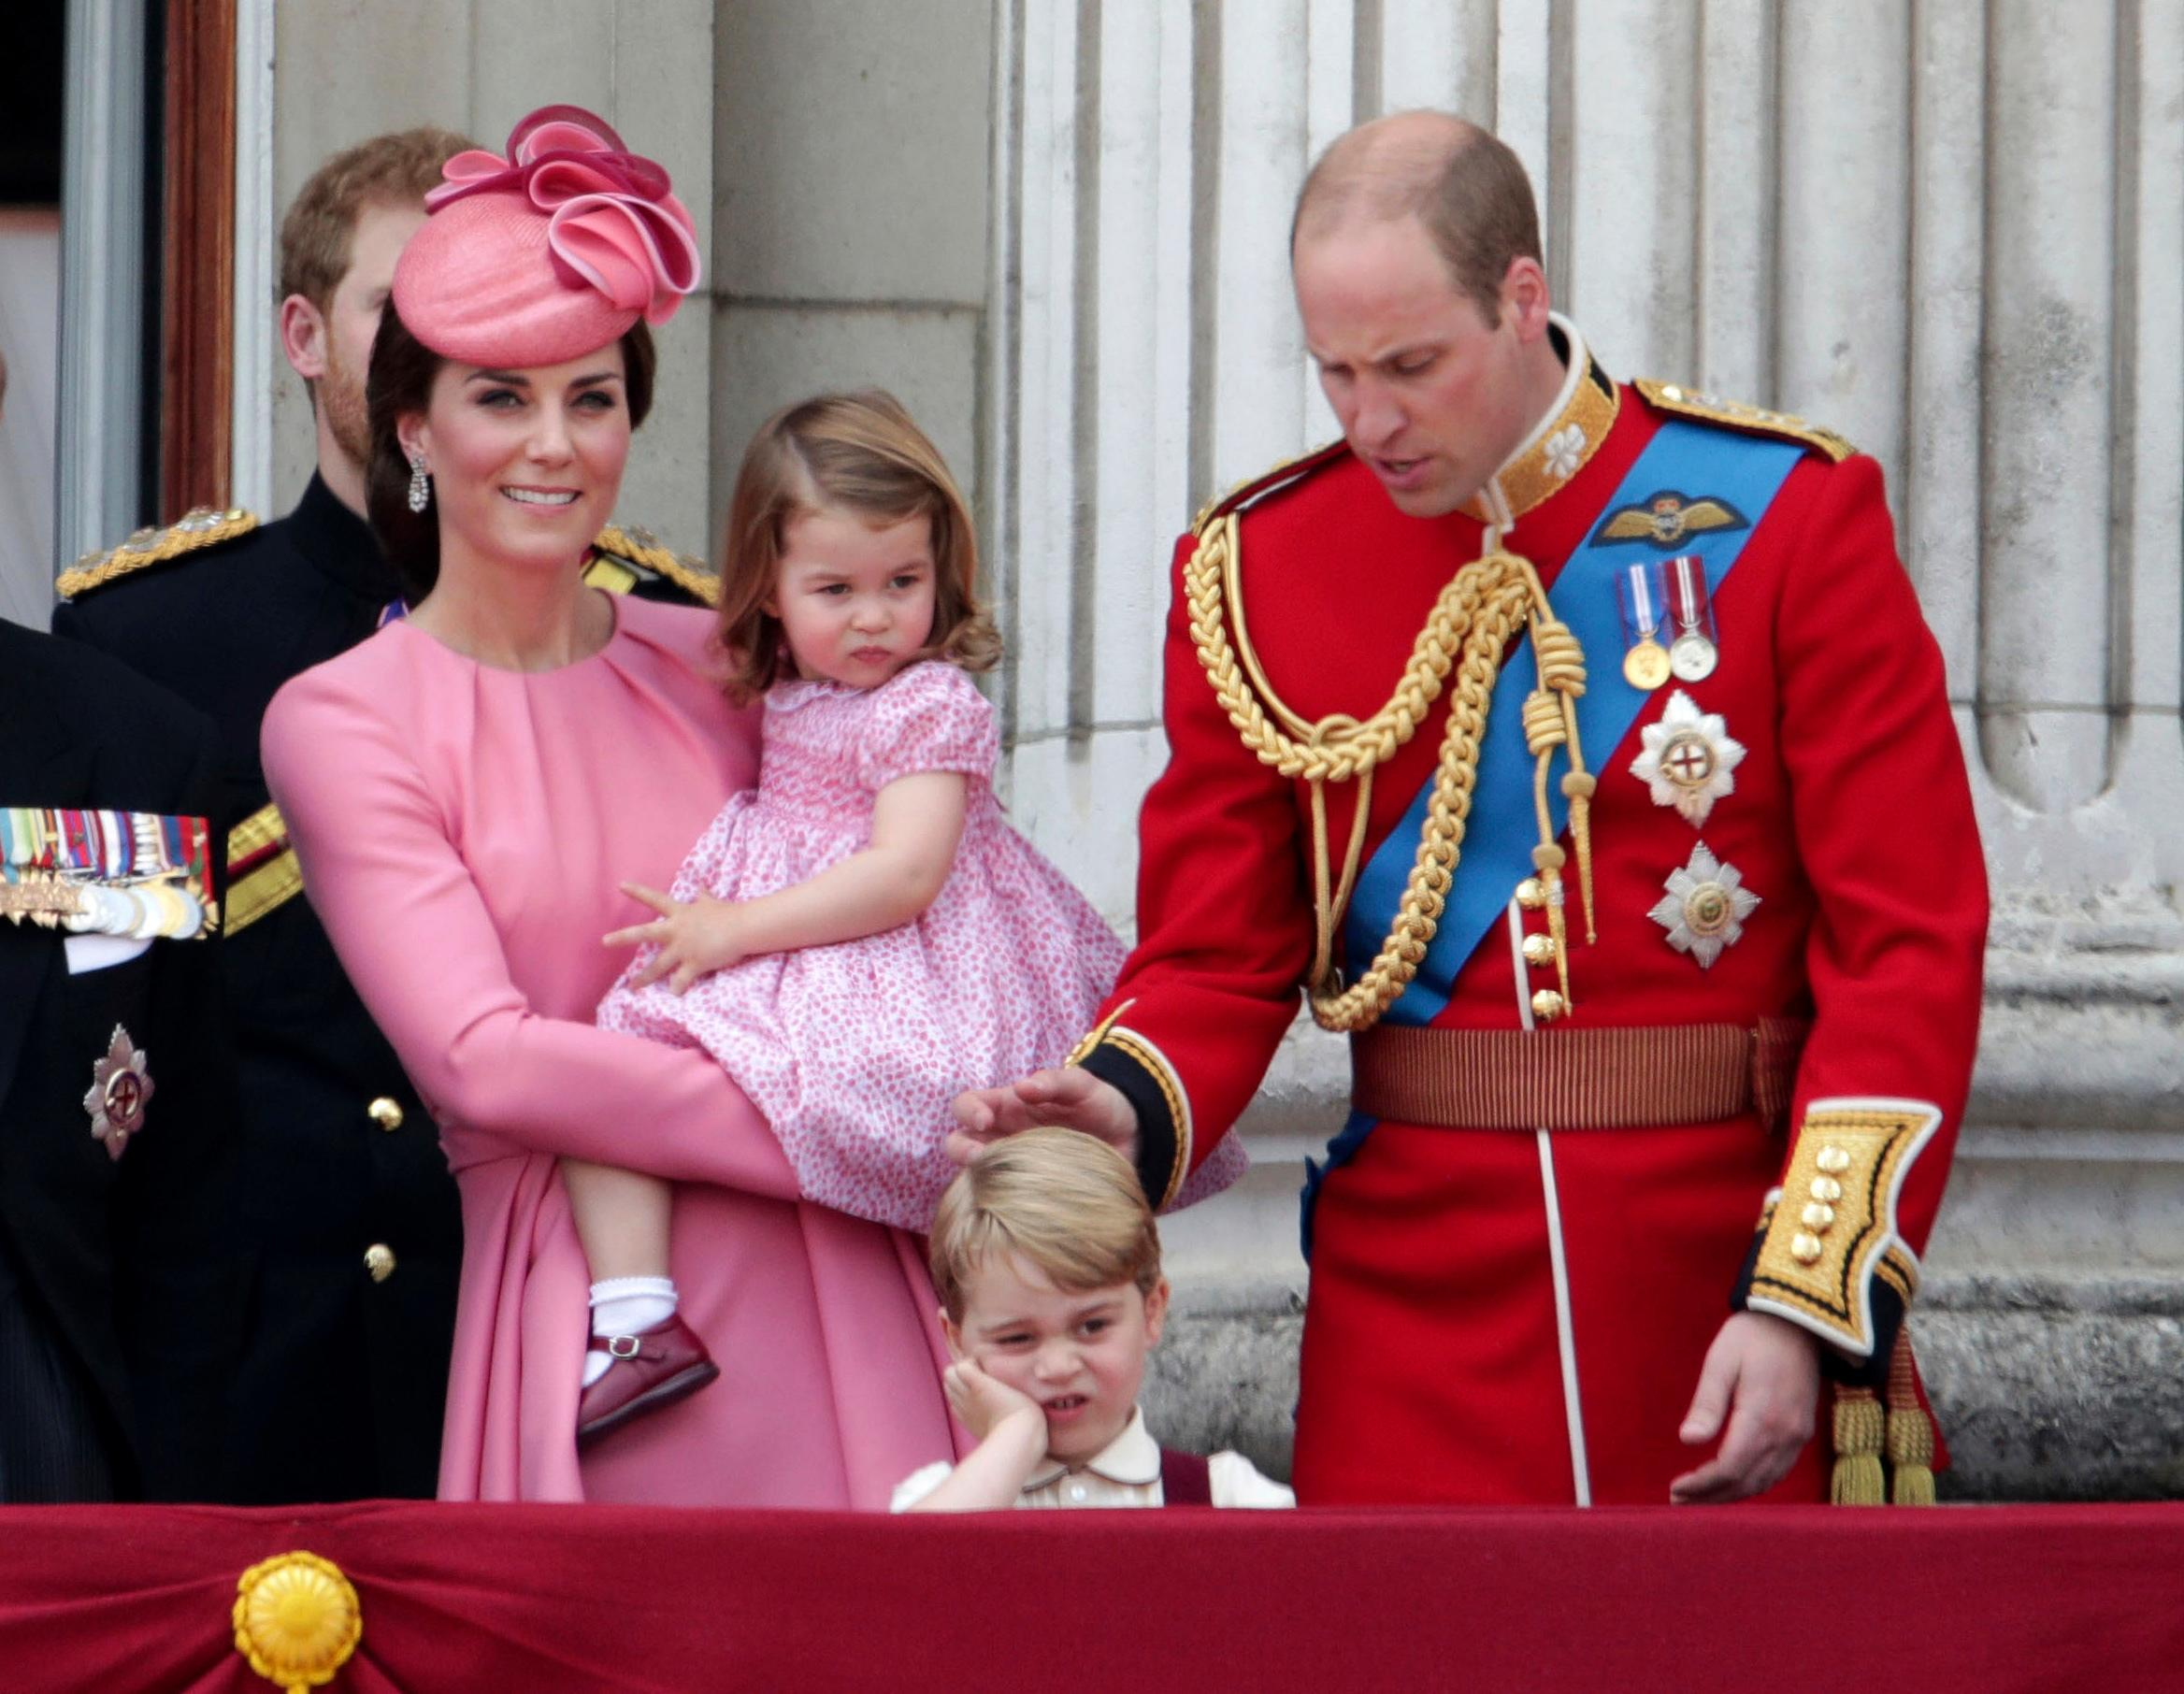 Kate, The Duchess of Cambridge, holds Princess Charlotte with Prince William at right and Prince George, foreground, on the balcony of Buckingham Palace, after attending the annual Trooping the Colour Ceremony in London, Saturday, June 17, 2017. (Yui Mok/PA via AP)